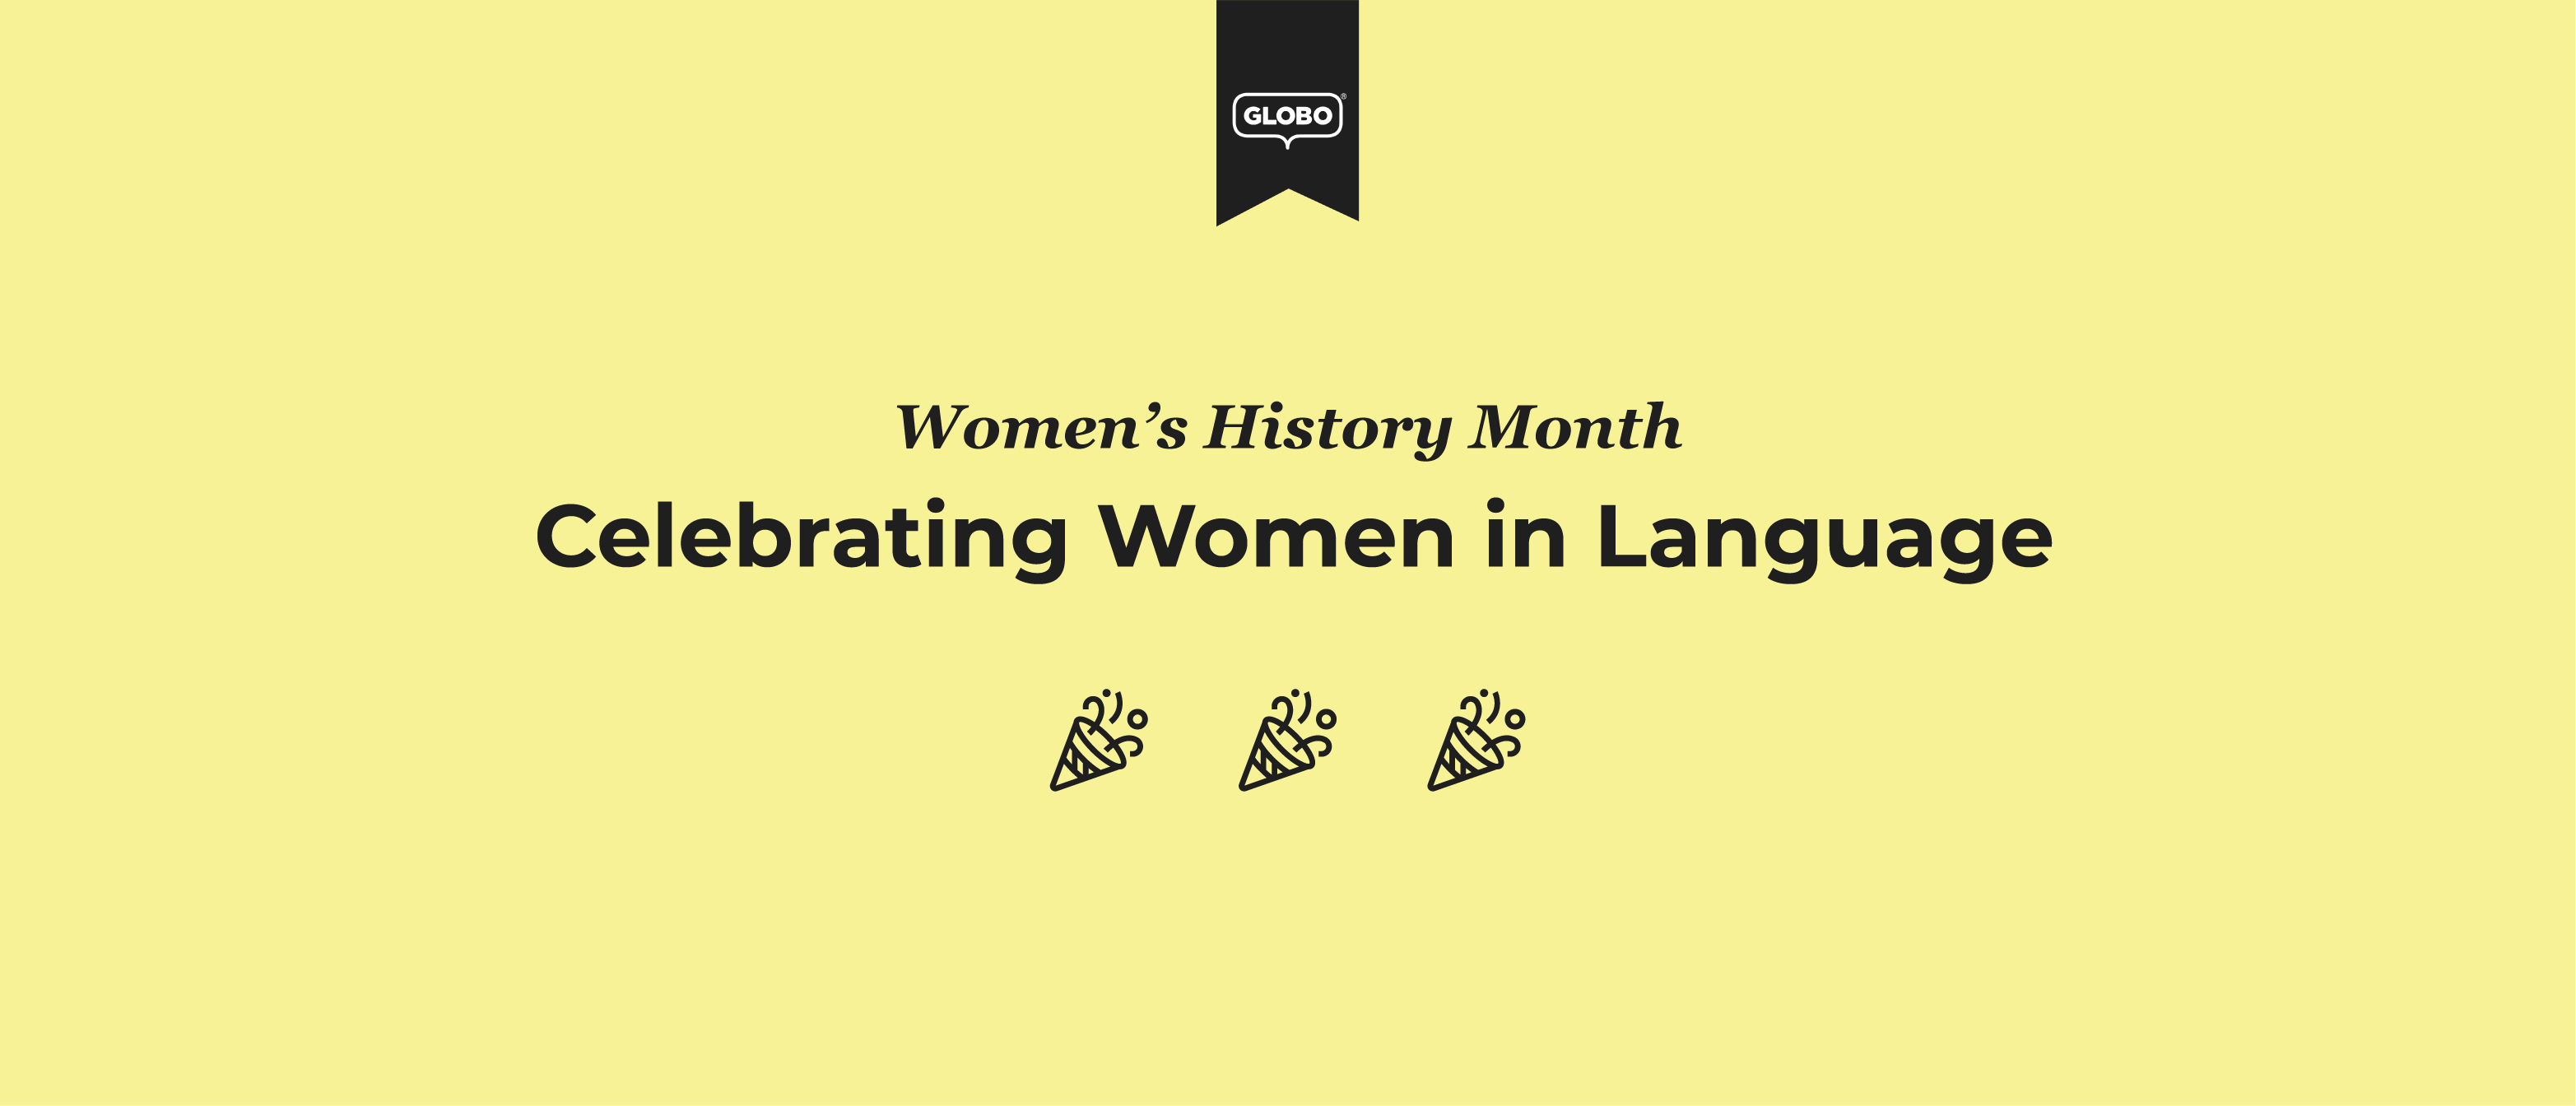 Celebrating Women in Language